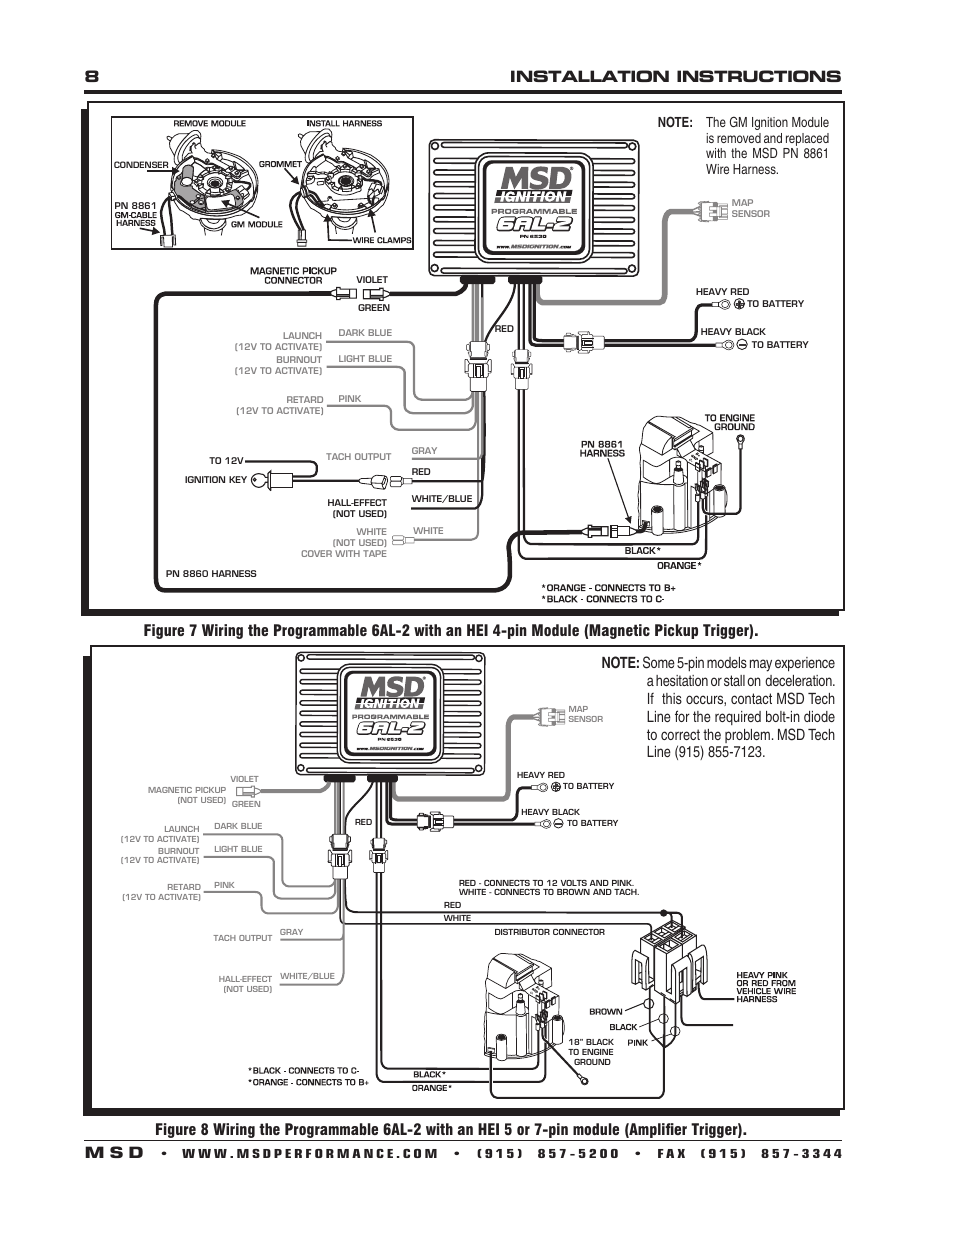 Msd 8920 Wiring Diagram : 23 Wiring Diagram Images